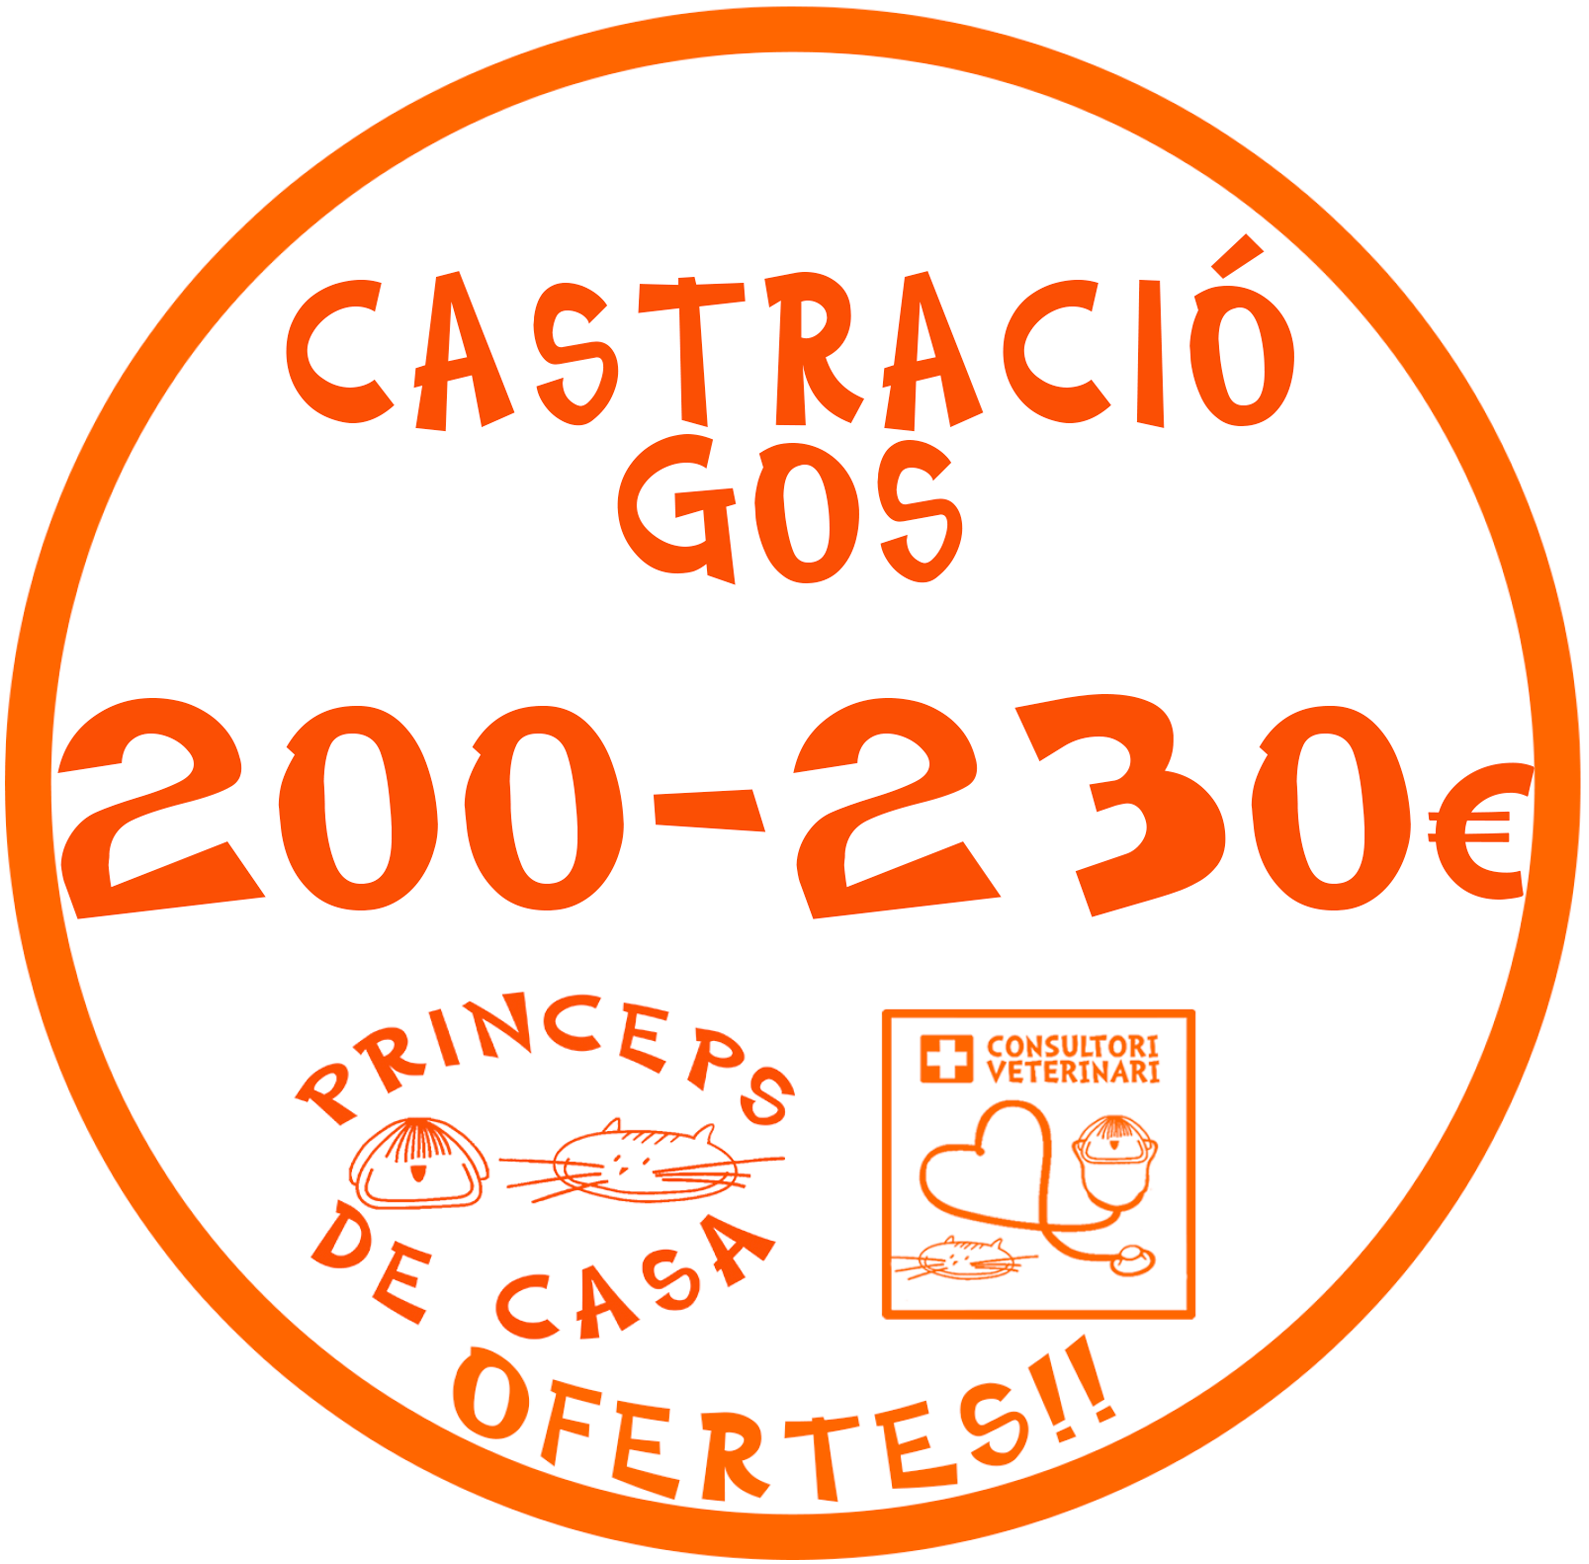 castracio gos dog castration english speaking vet maragall horta vilapicina barcelona